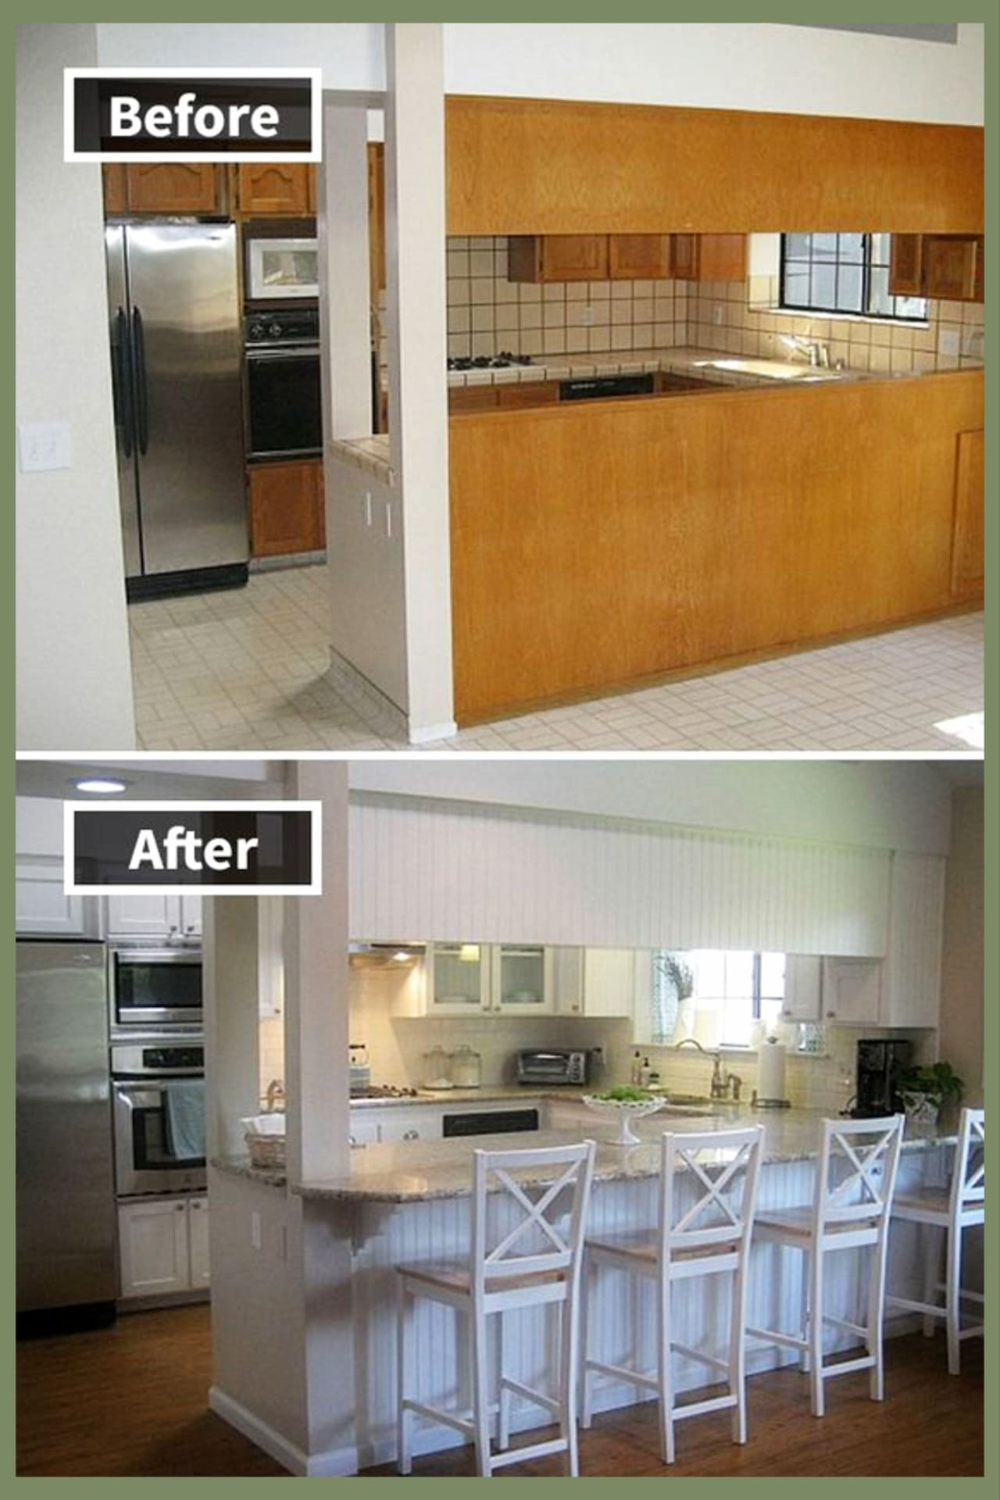 Small Kitchen Ideas On A Budget Before After Remodel Pictures Of Tiny Kitchens Kitchen Redesign Kitchen Remodel Small Small Kitchen Ideas On A Budget